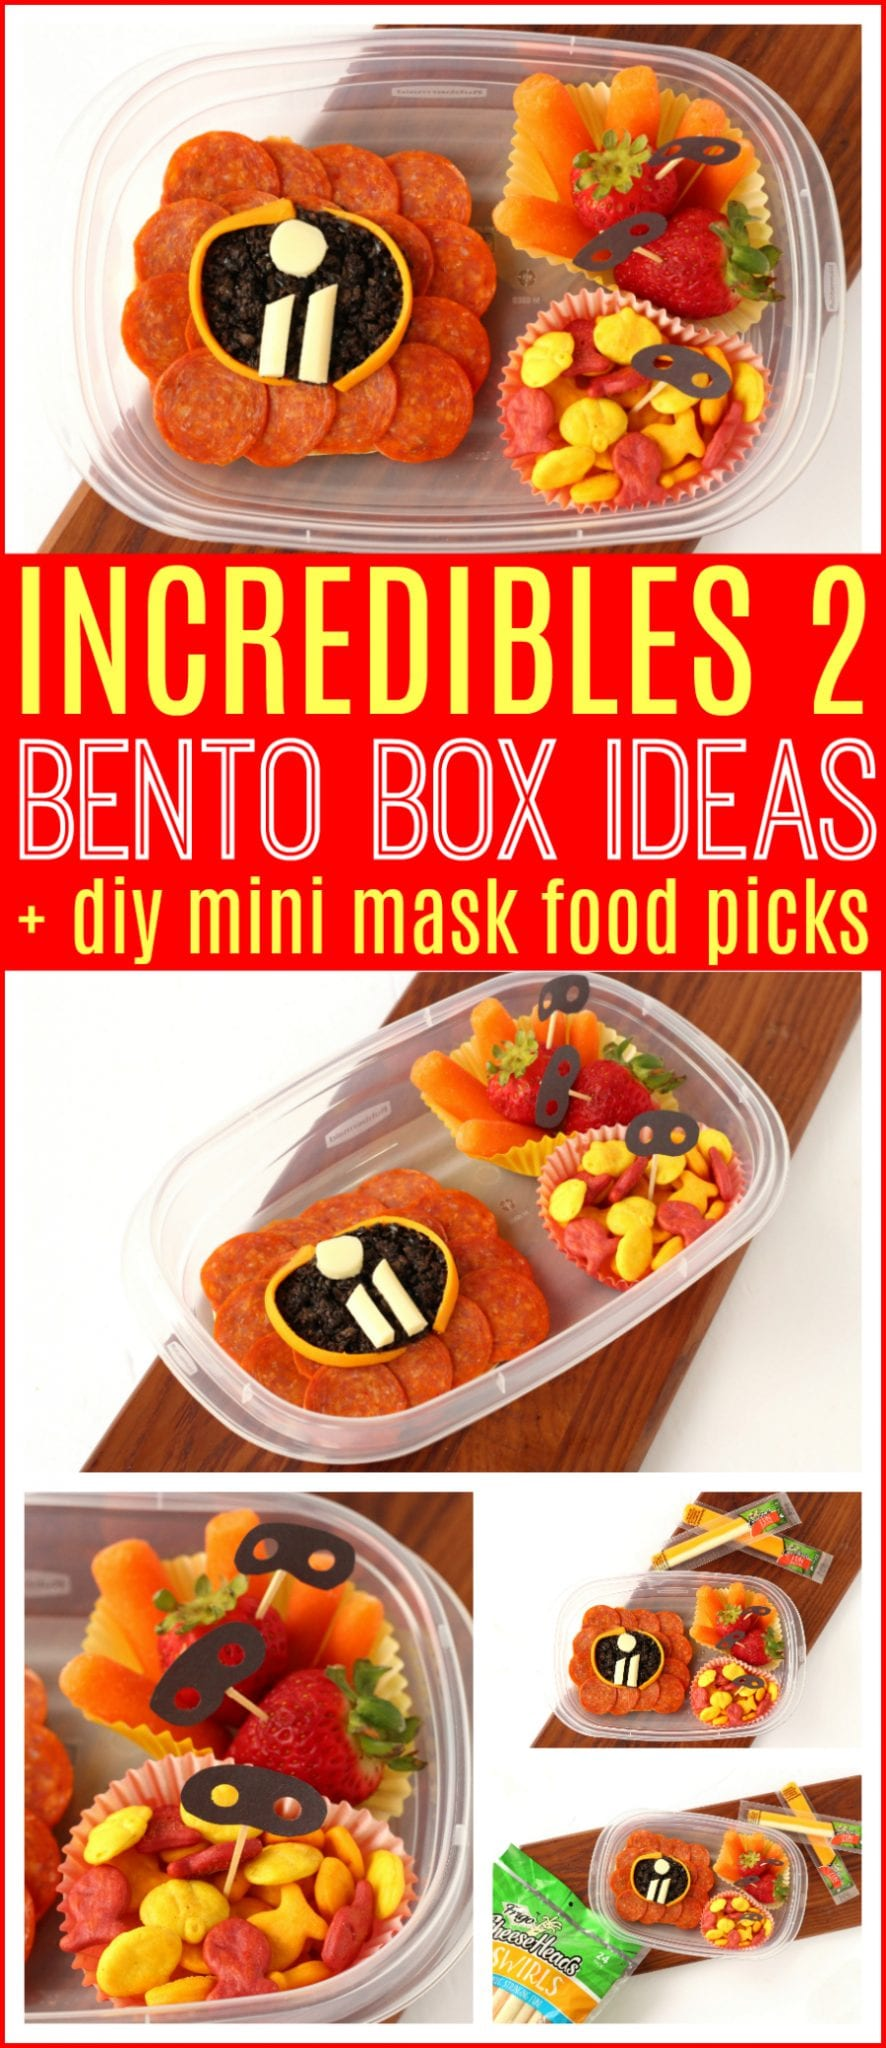 Incredibles 2 bento box ideas